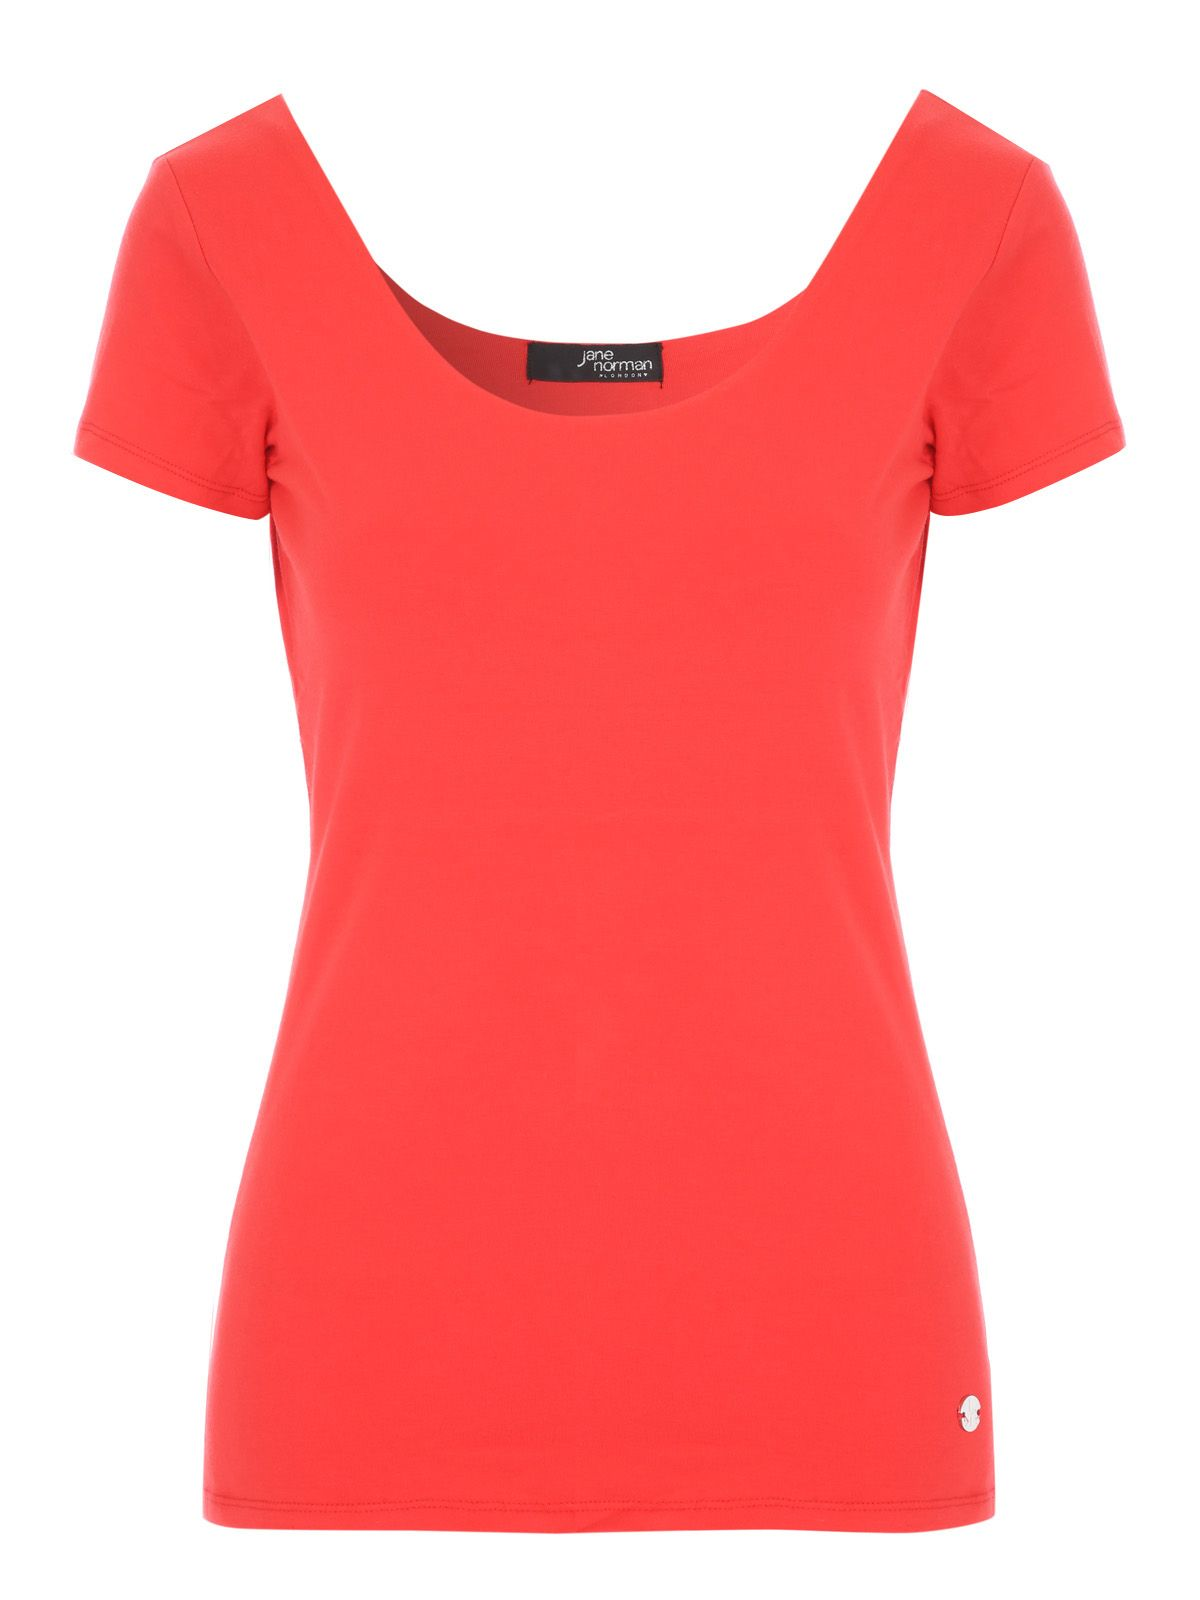 Jane Norman Bust Support T-Shirt, Red